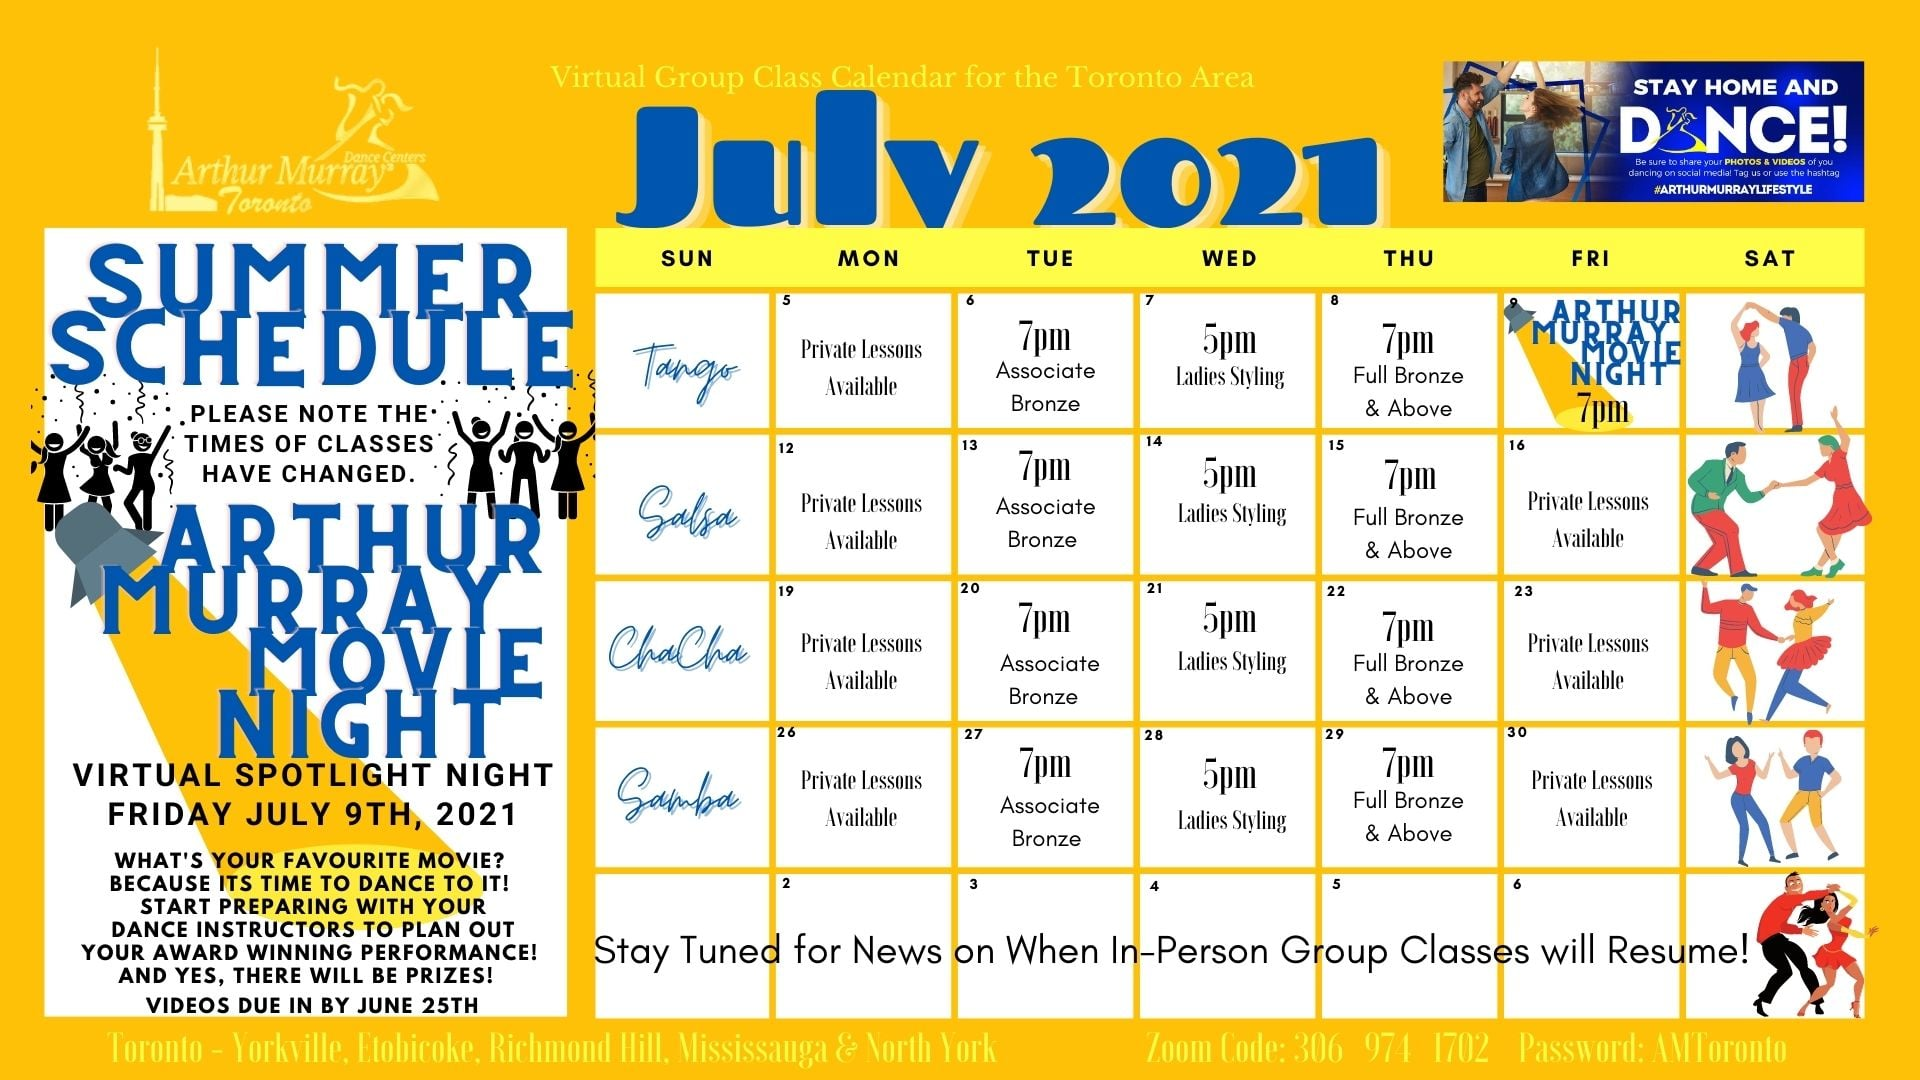 Arthur Murray Toronto - Yorkville July 2021 Dance Class Calendar including weekly schedule including tango, samba, cha cha, salsa, private dance lessons, group dance classes, dance parties, and dance studio events in Toronto